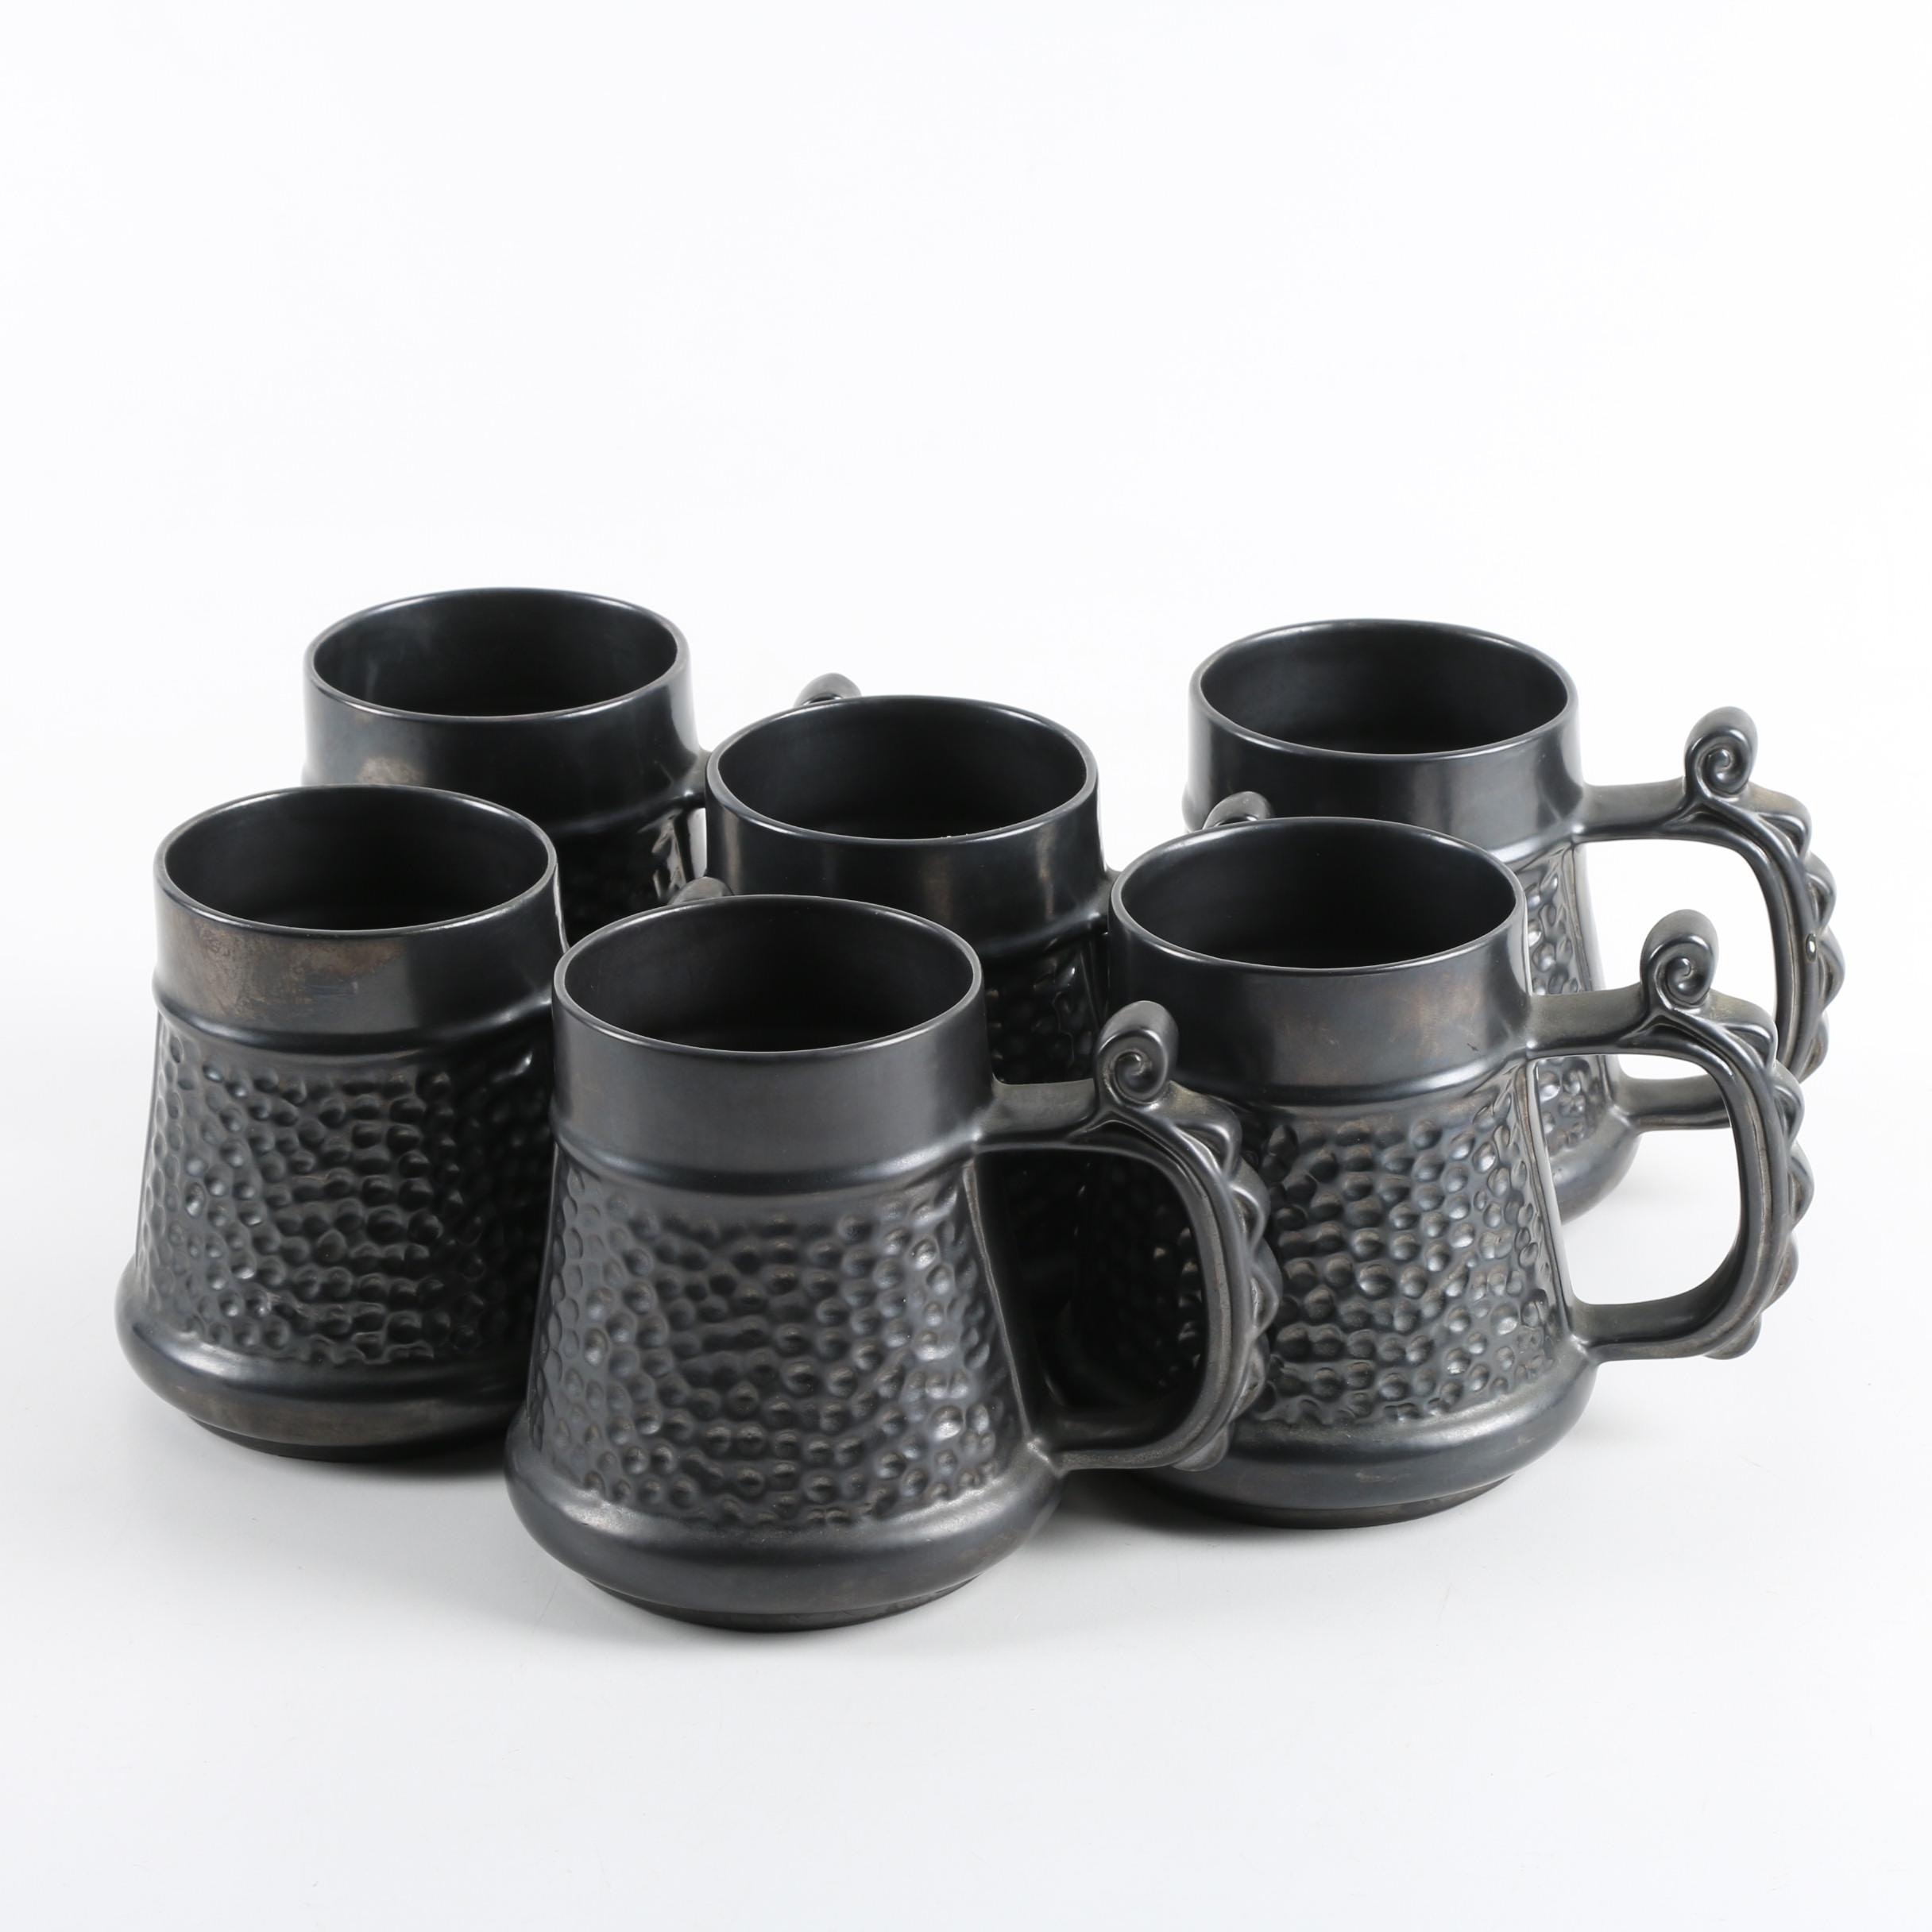 Prinknash Abbey English Pottery Mugs